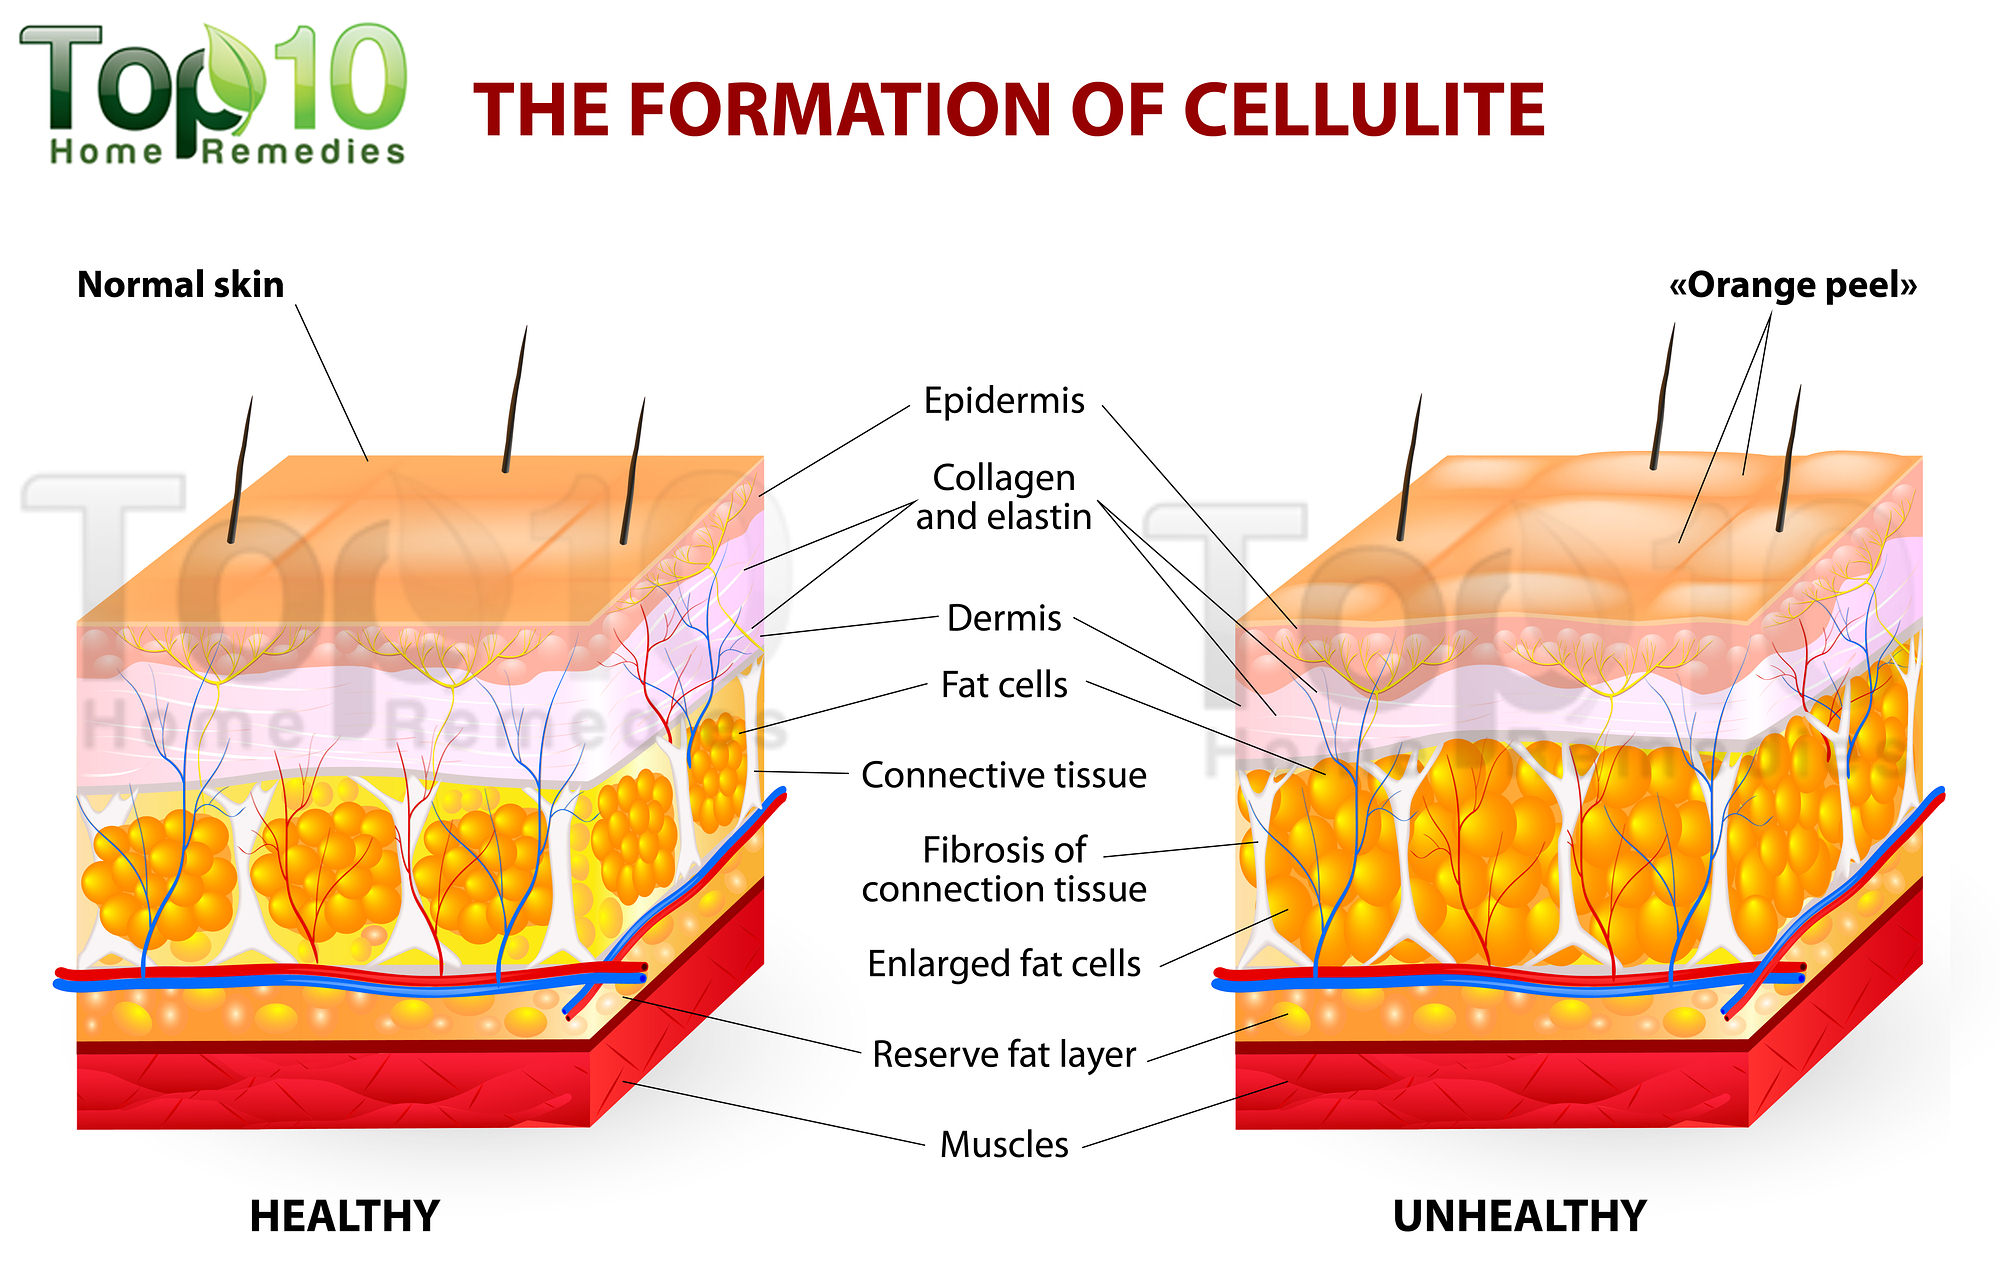 How to get rid of cellulite in thighs sdarc wellness center how to get rid of cellulite in thighs sdarc wellness center chiropractic care sports therapy services mission valley ca pooptronica Images